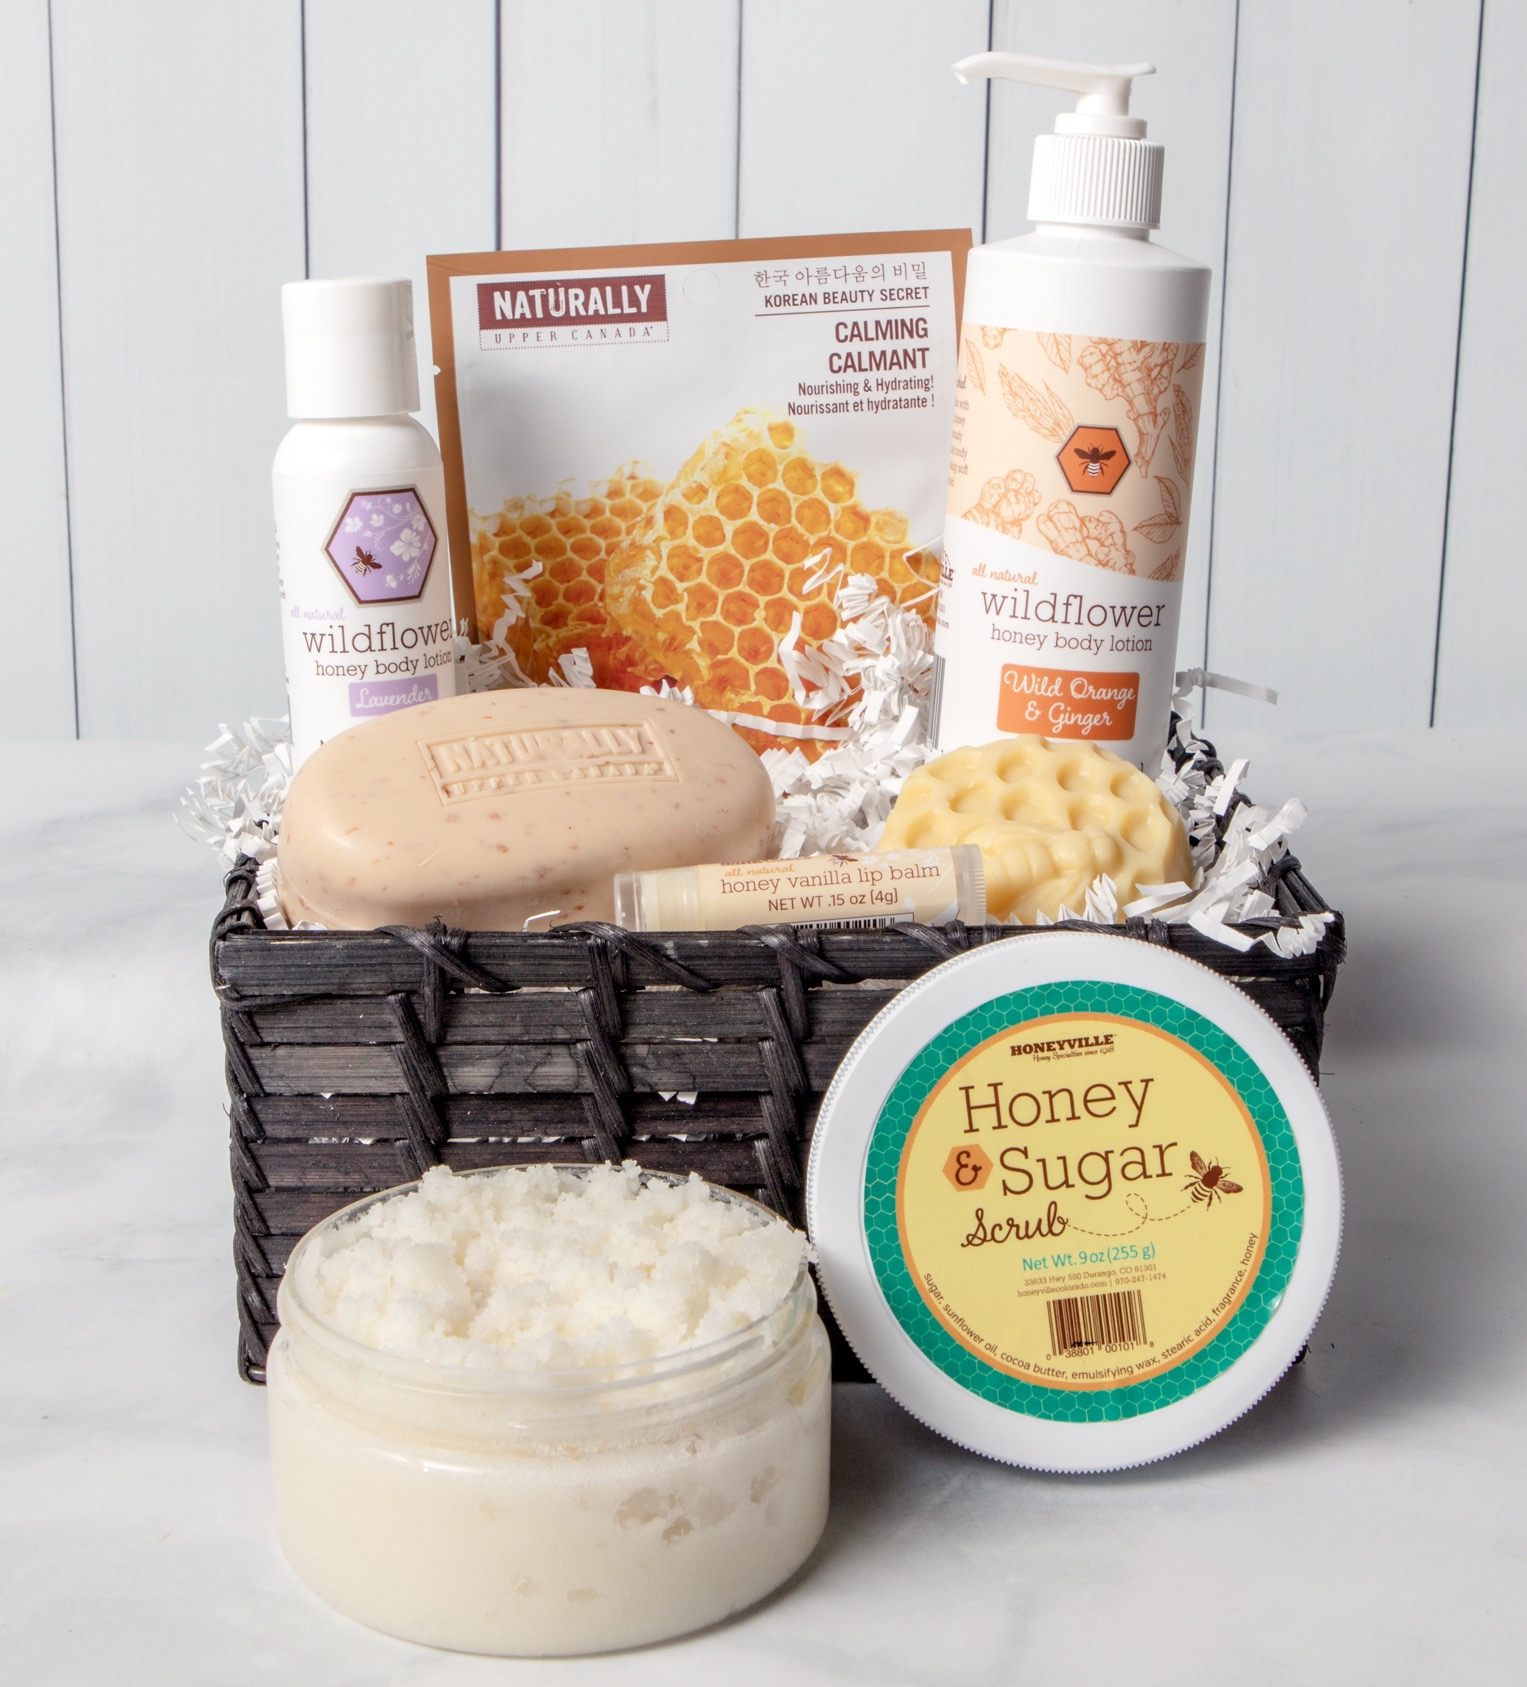 BODY CARE GIFT BASKET